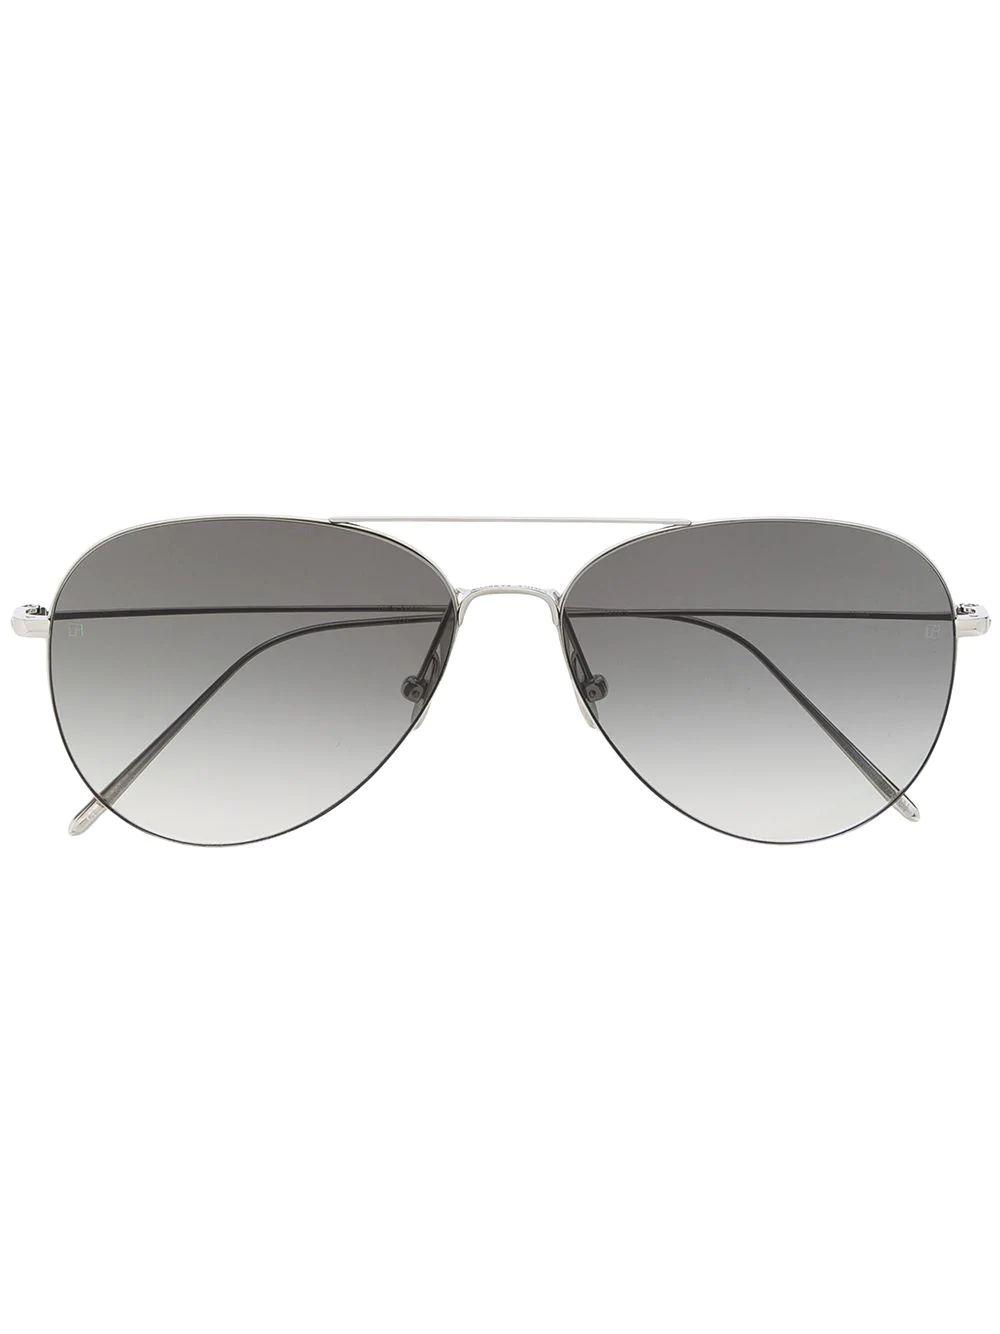 Lloyds Aviator Sunglasses